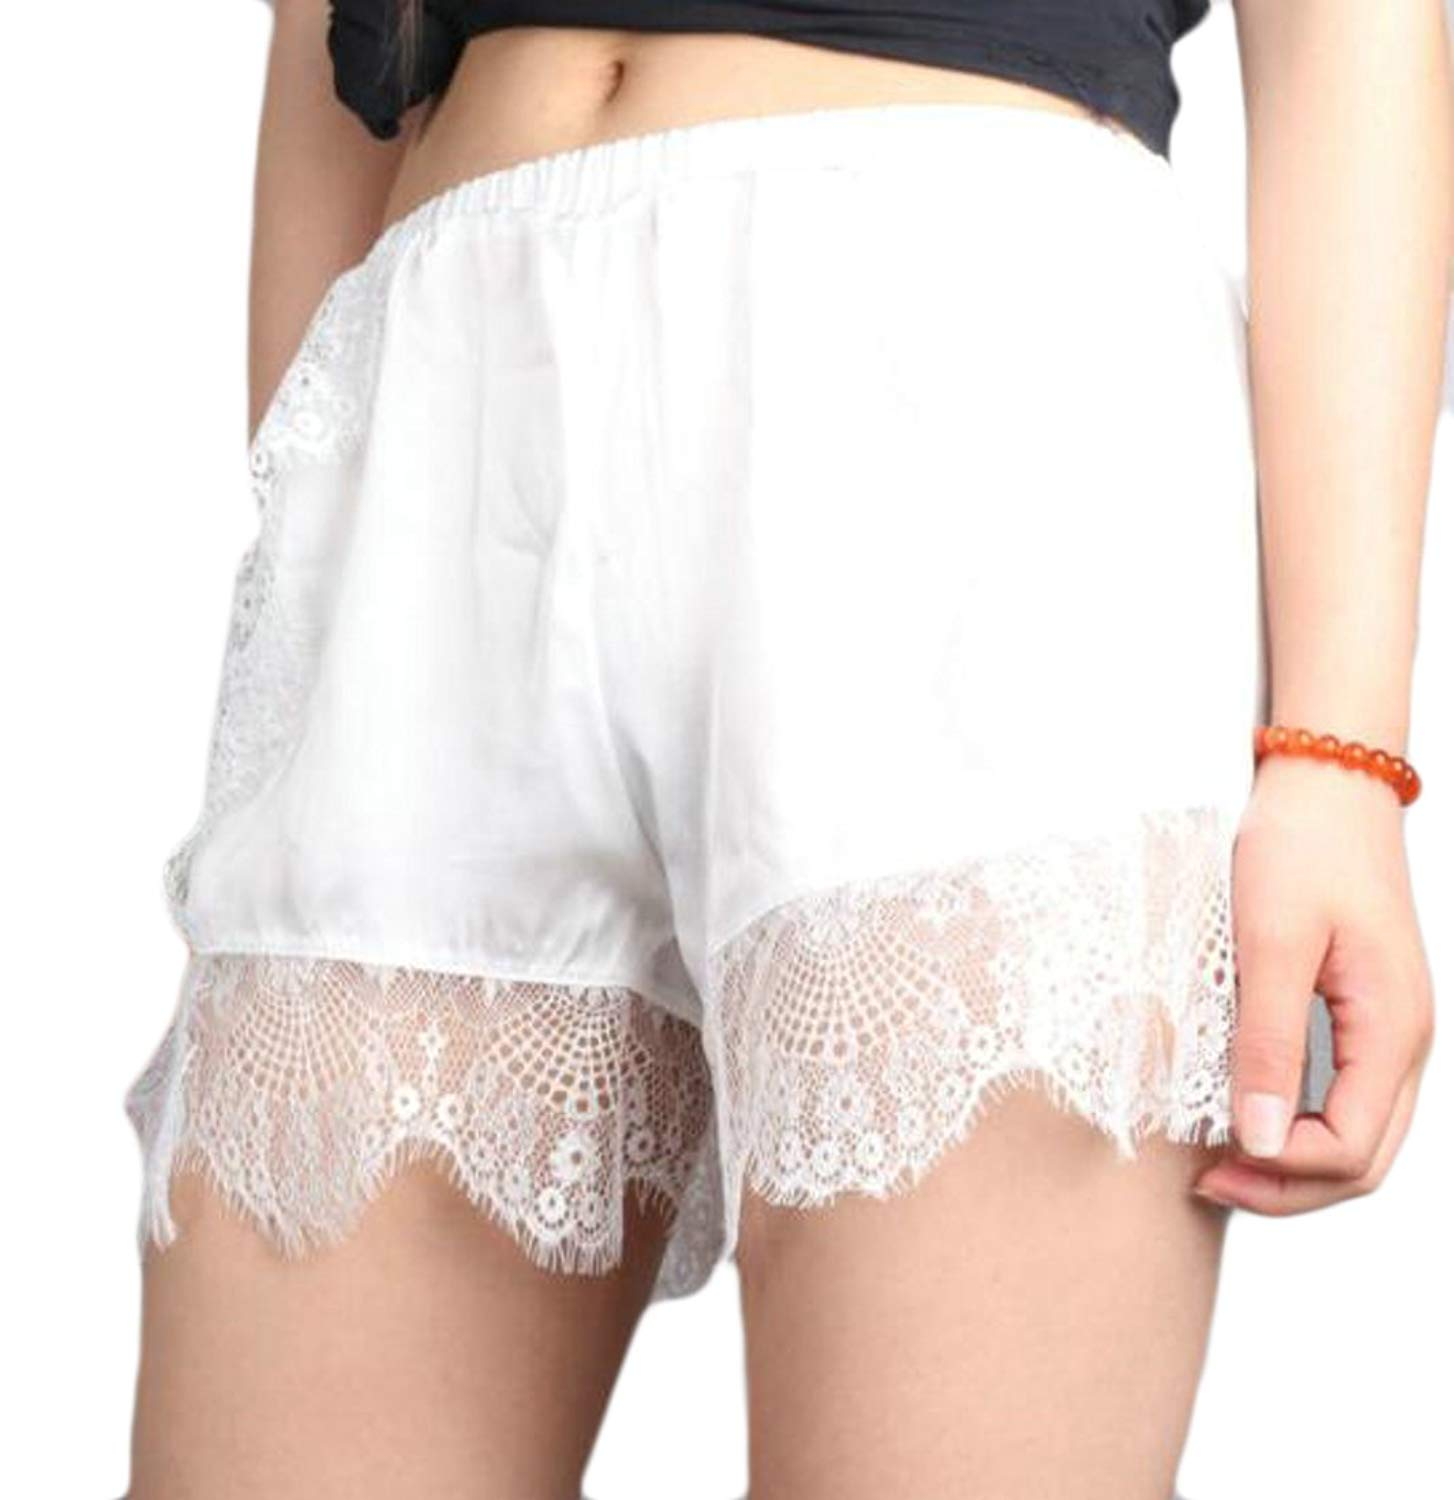 Not simple women with loose fitting panties valuable